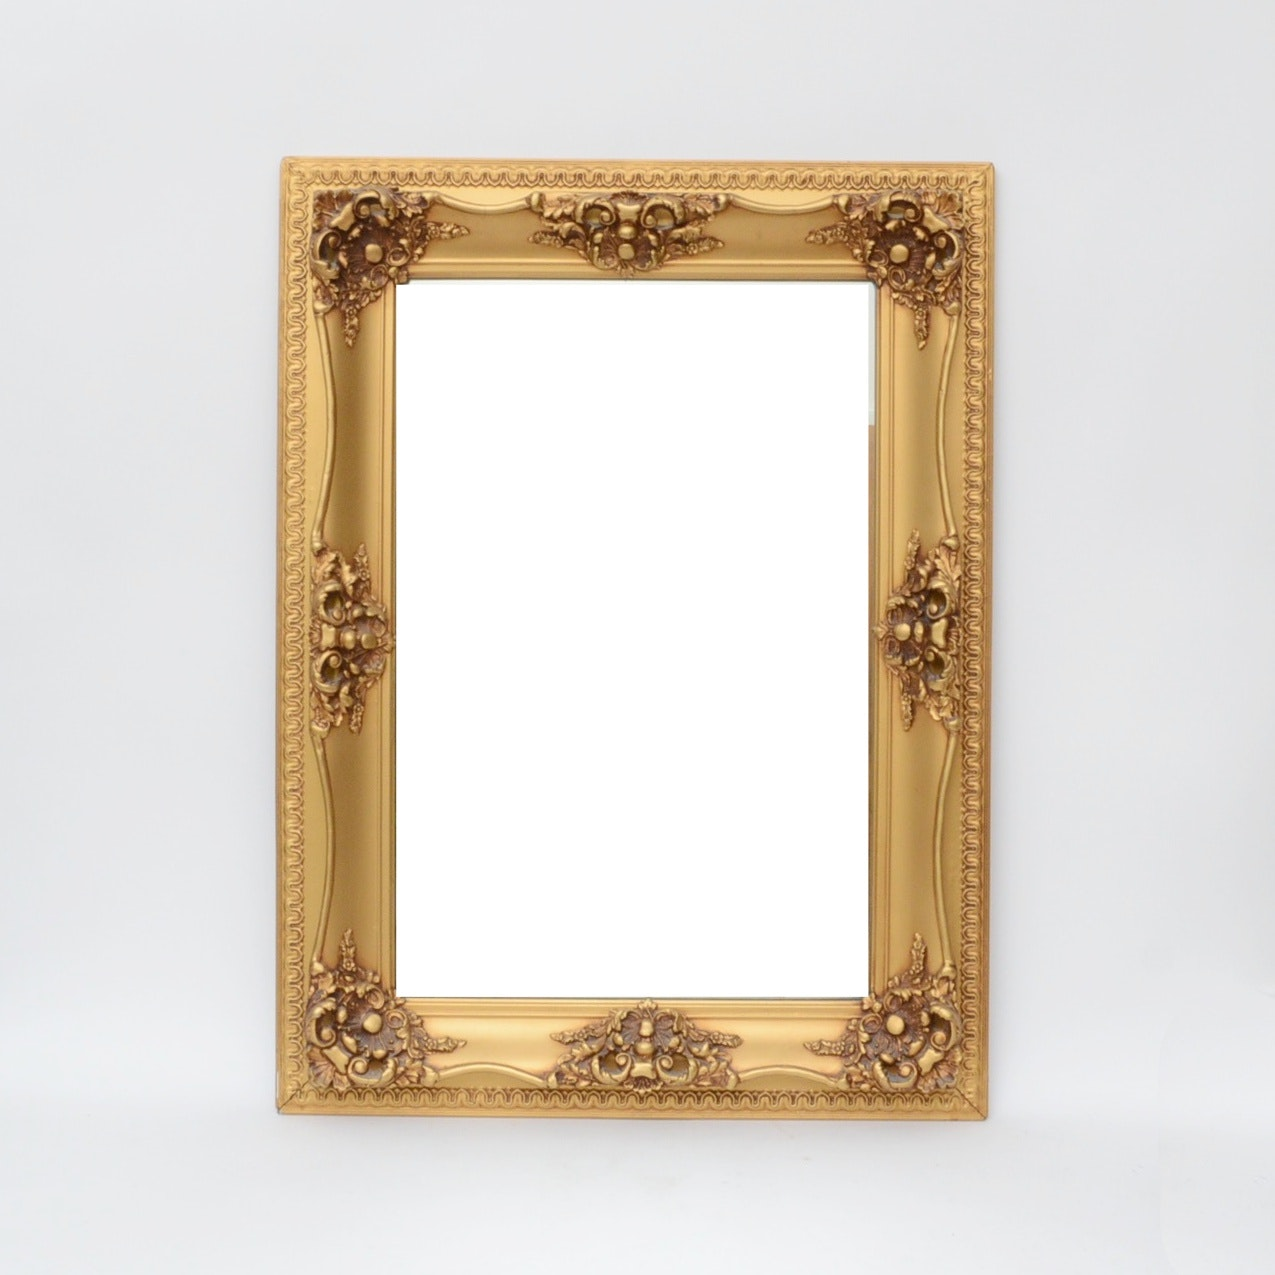 Baroque Style Gilded Wall Mirror